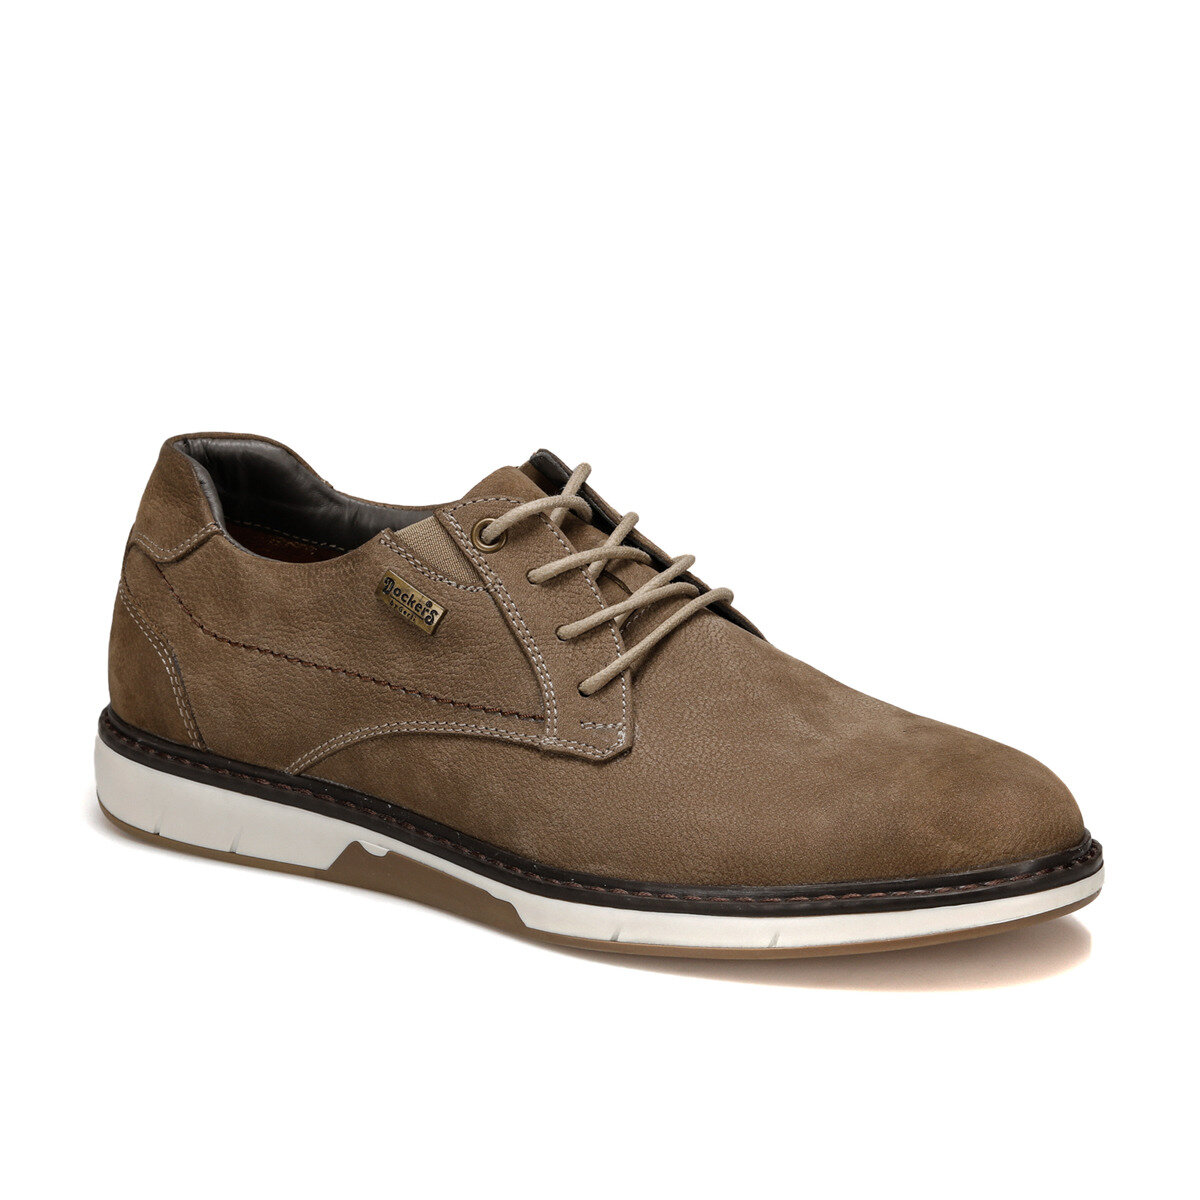 FLO 228231 Sand Color Men Casual Shoes By Dockers The Gerle